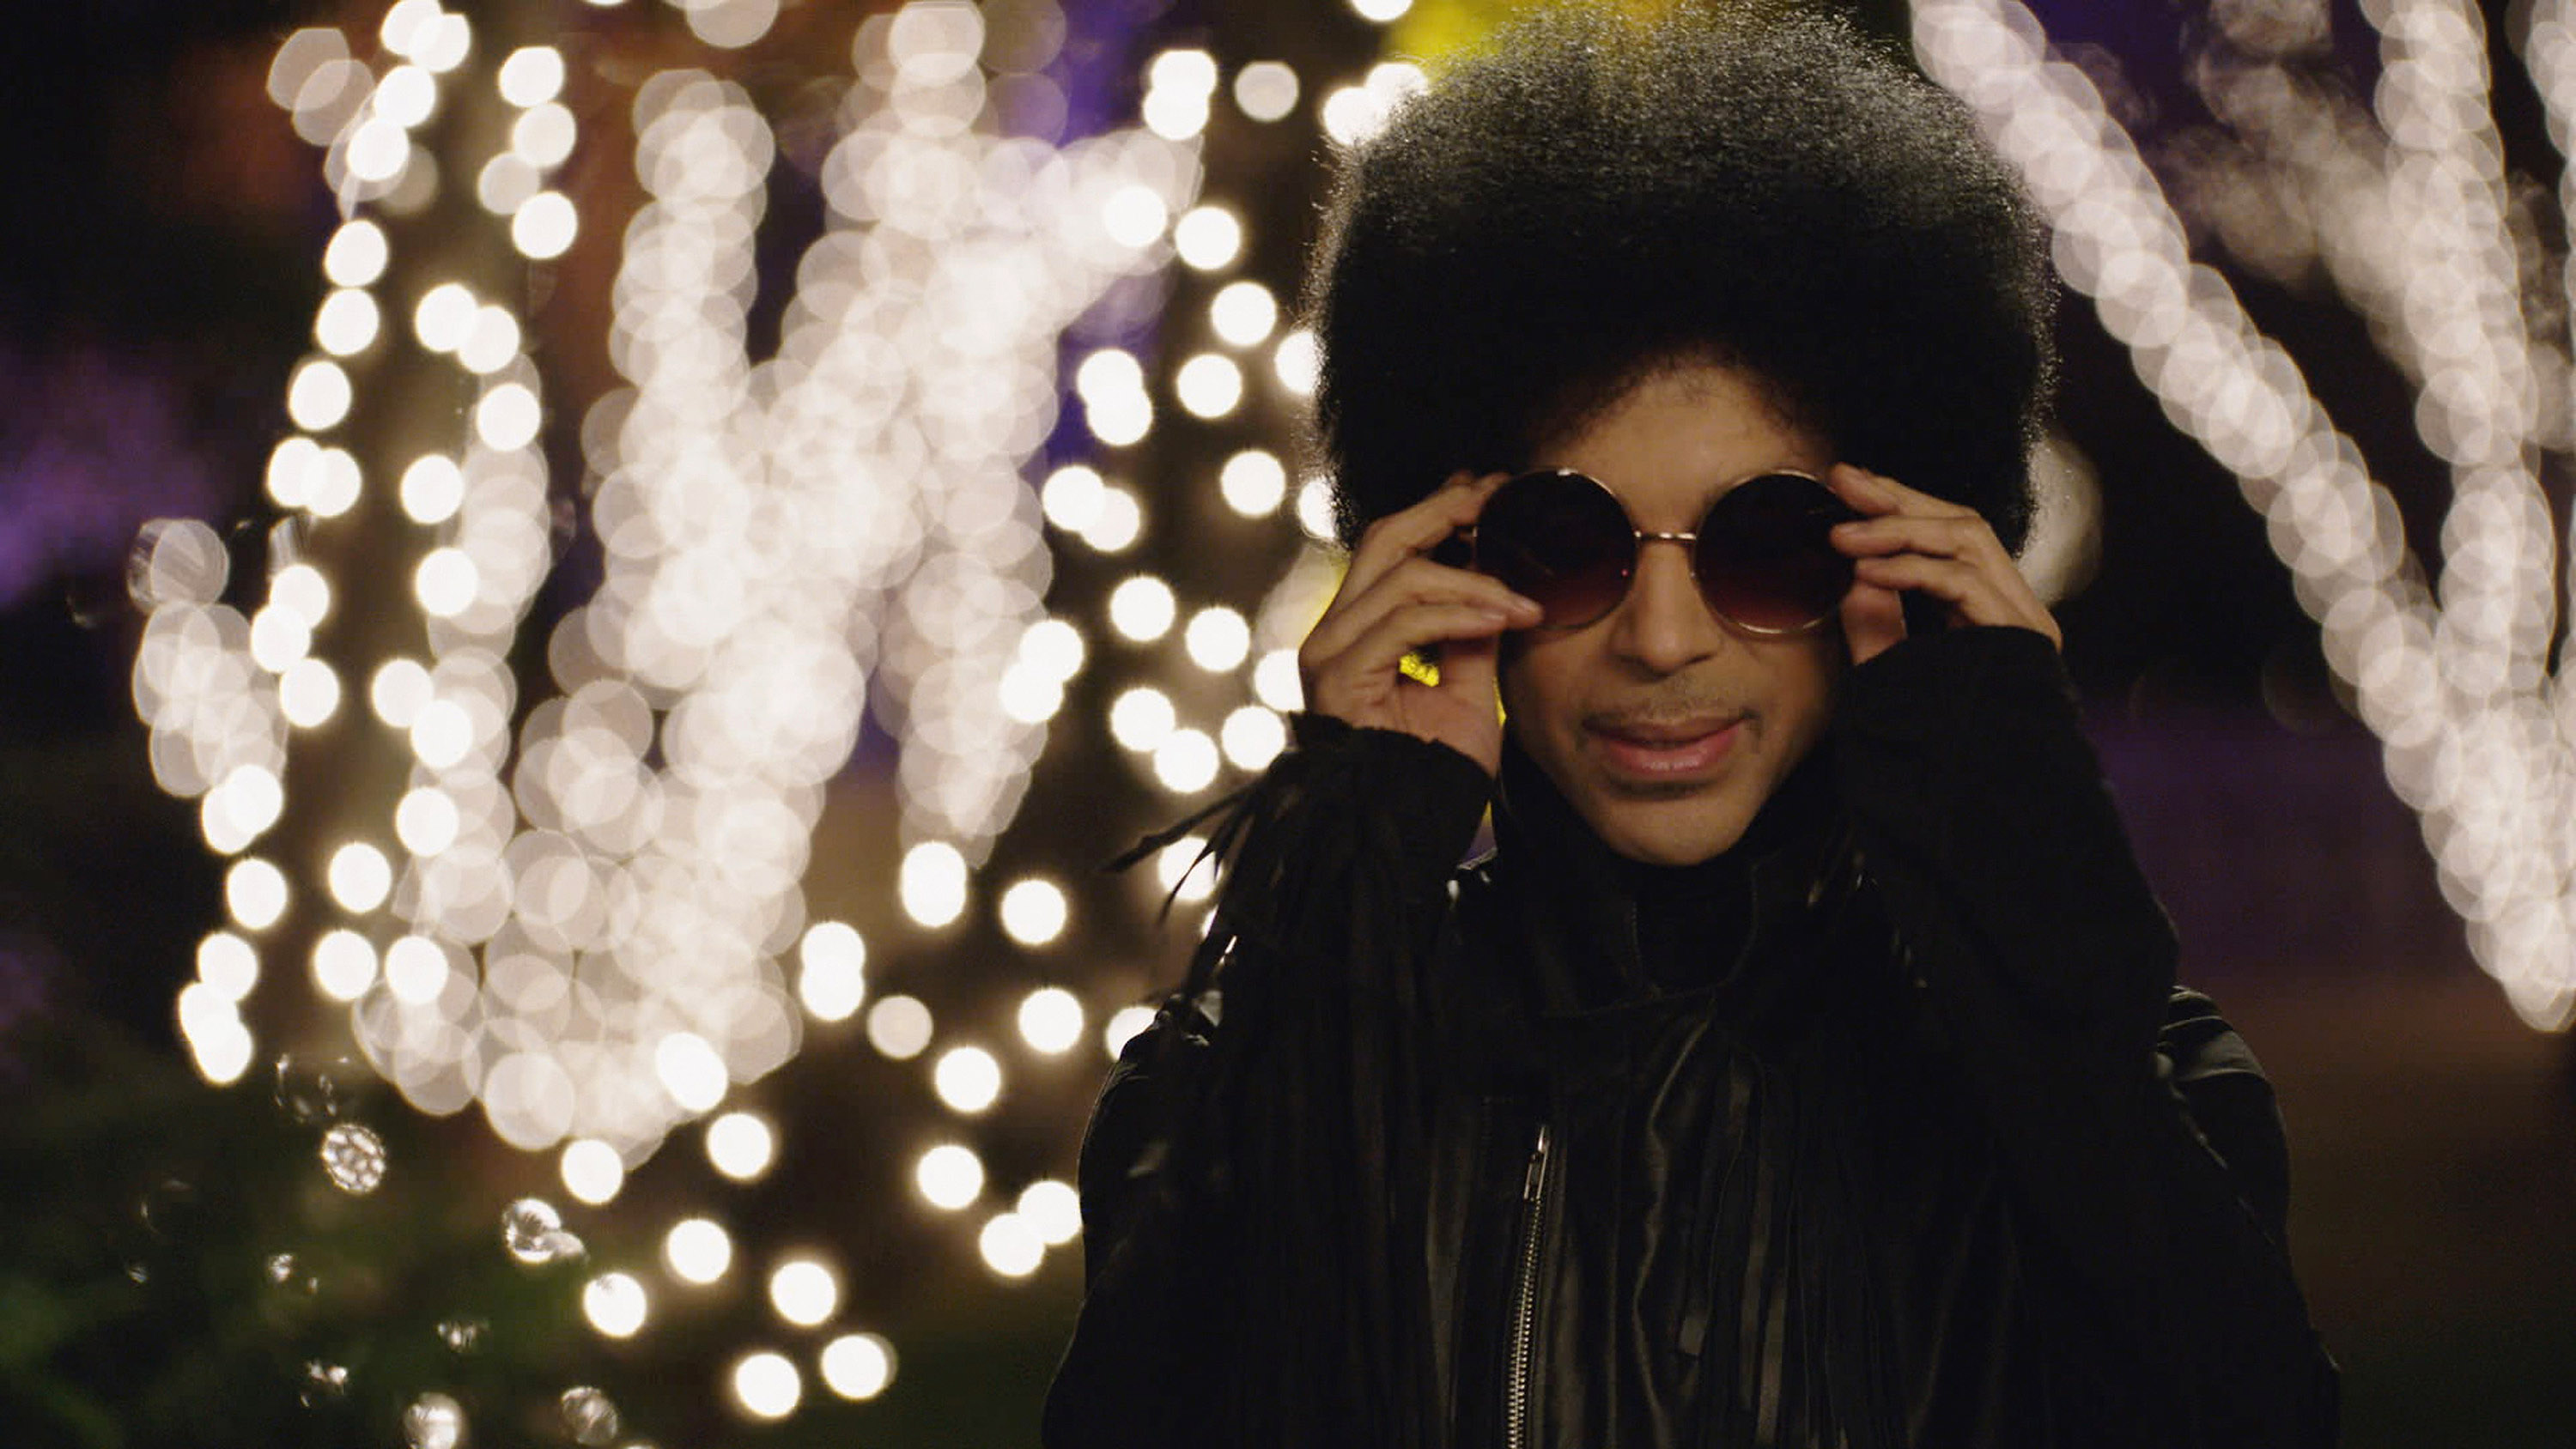 The Top 10 Hip-Hop & R&B Songs That Sample Prince | The Urban Daily